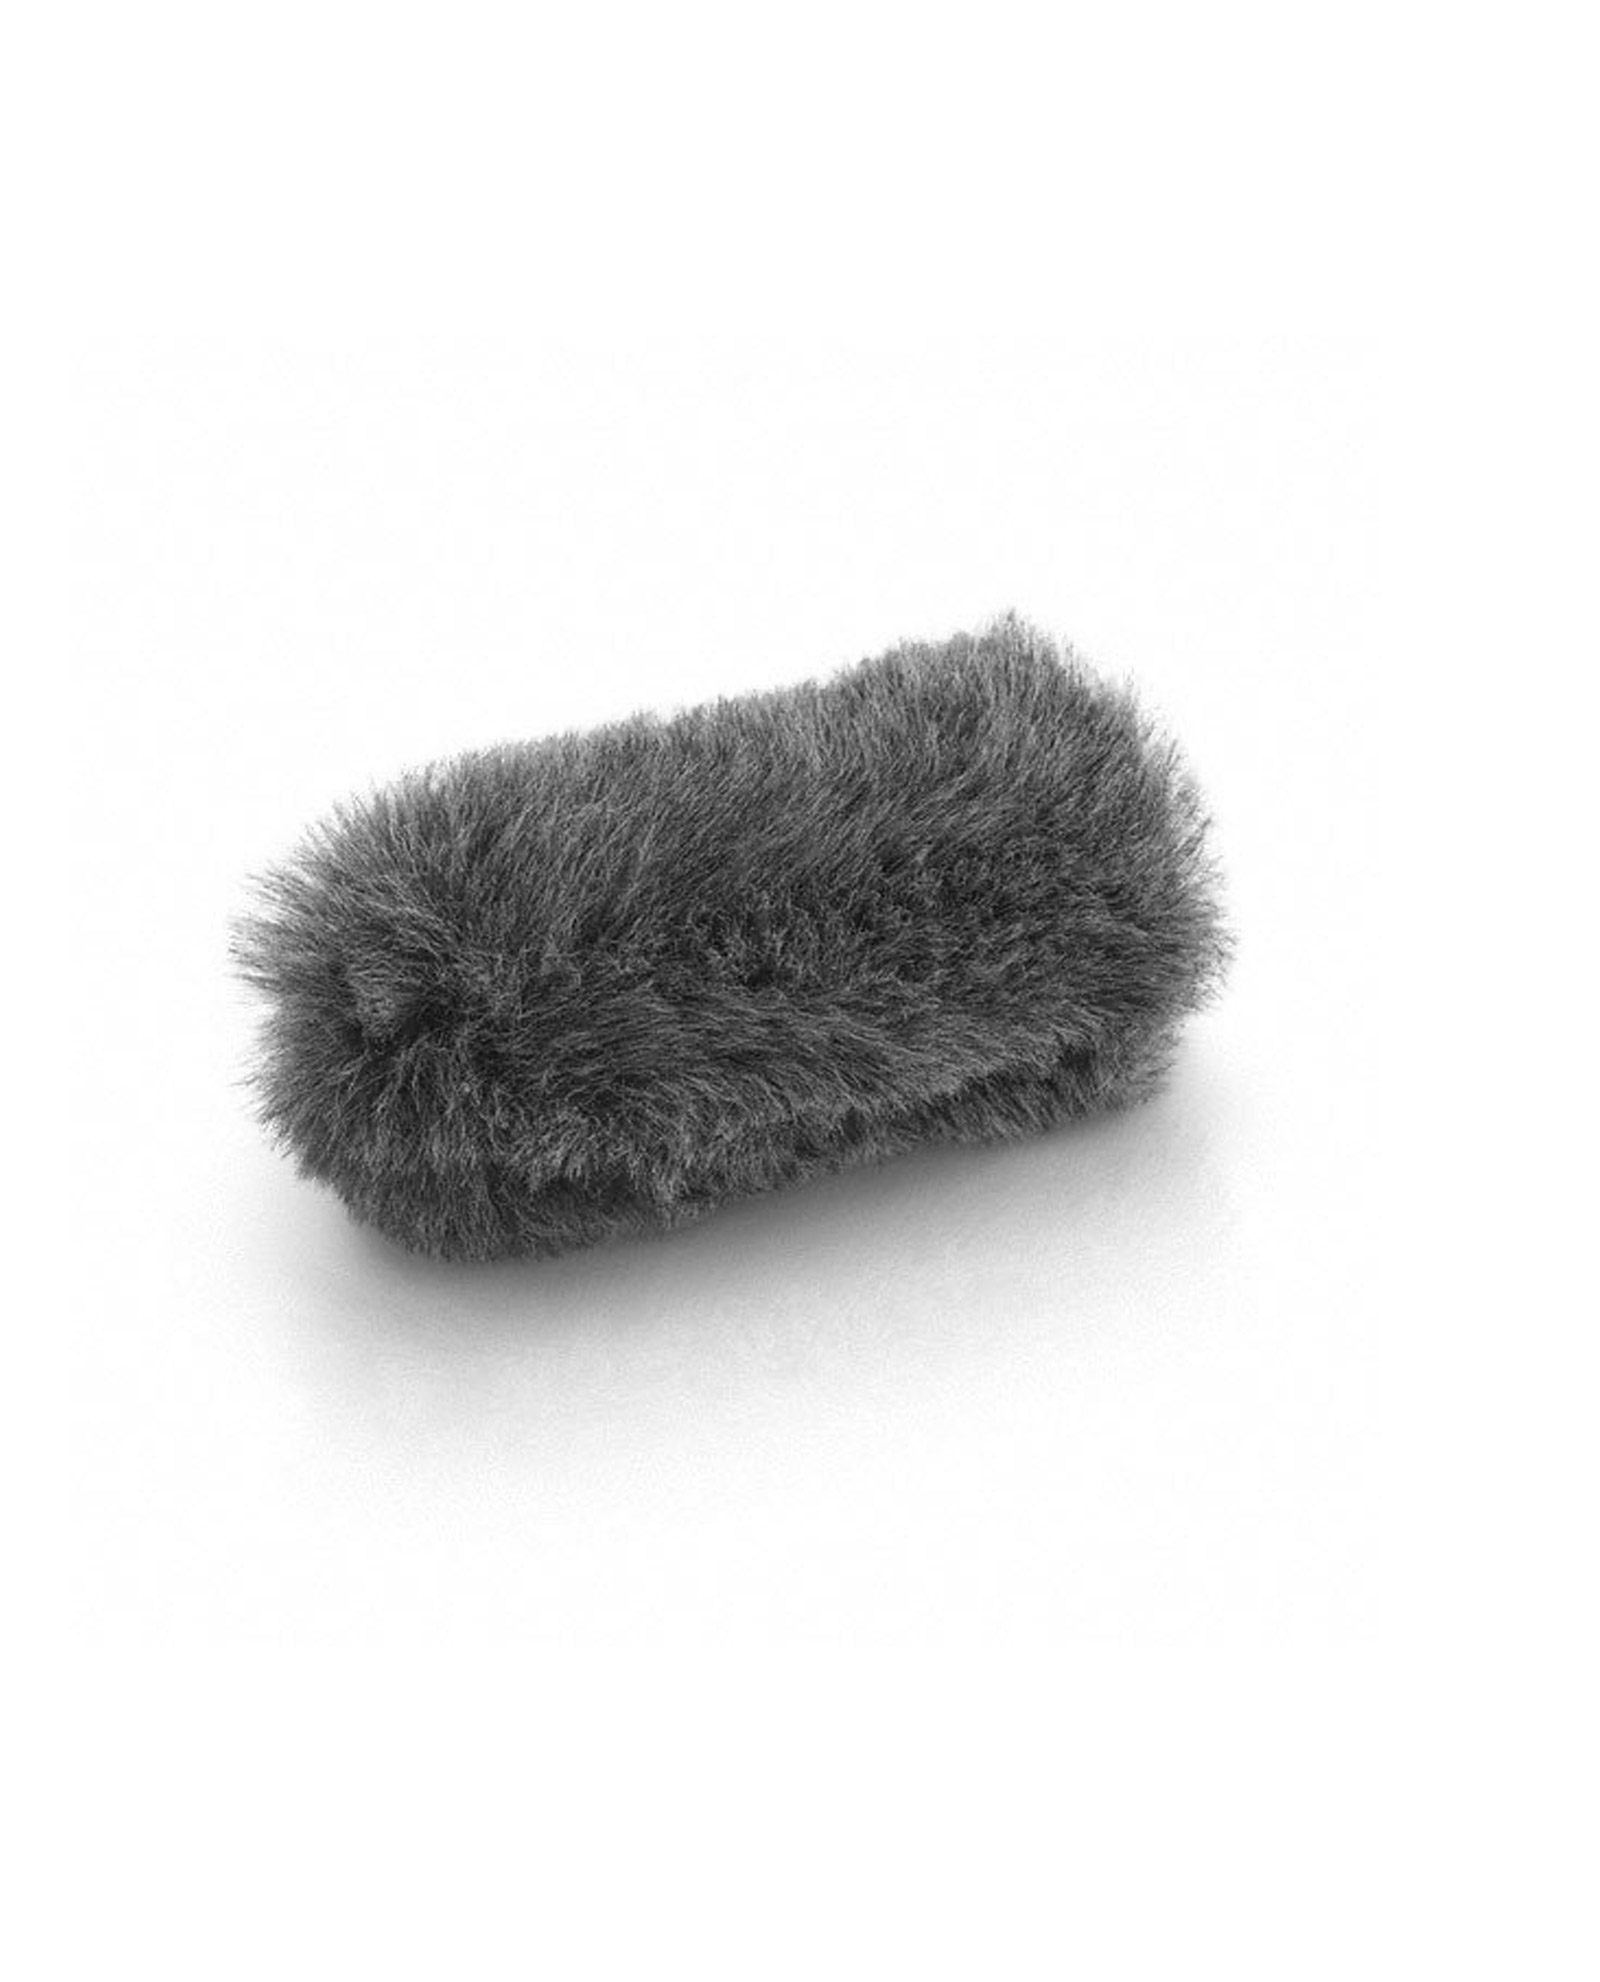 Sennheiser Mzh 600 Furry Windshield Blimp For Mke600